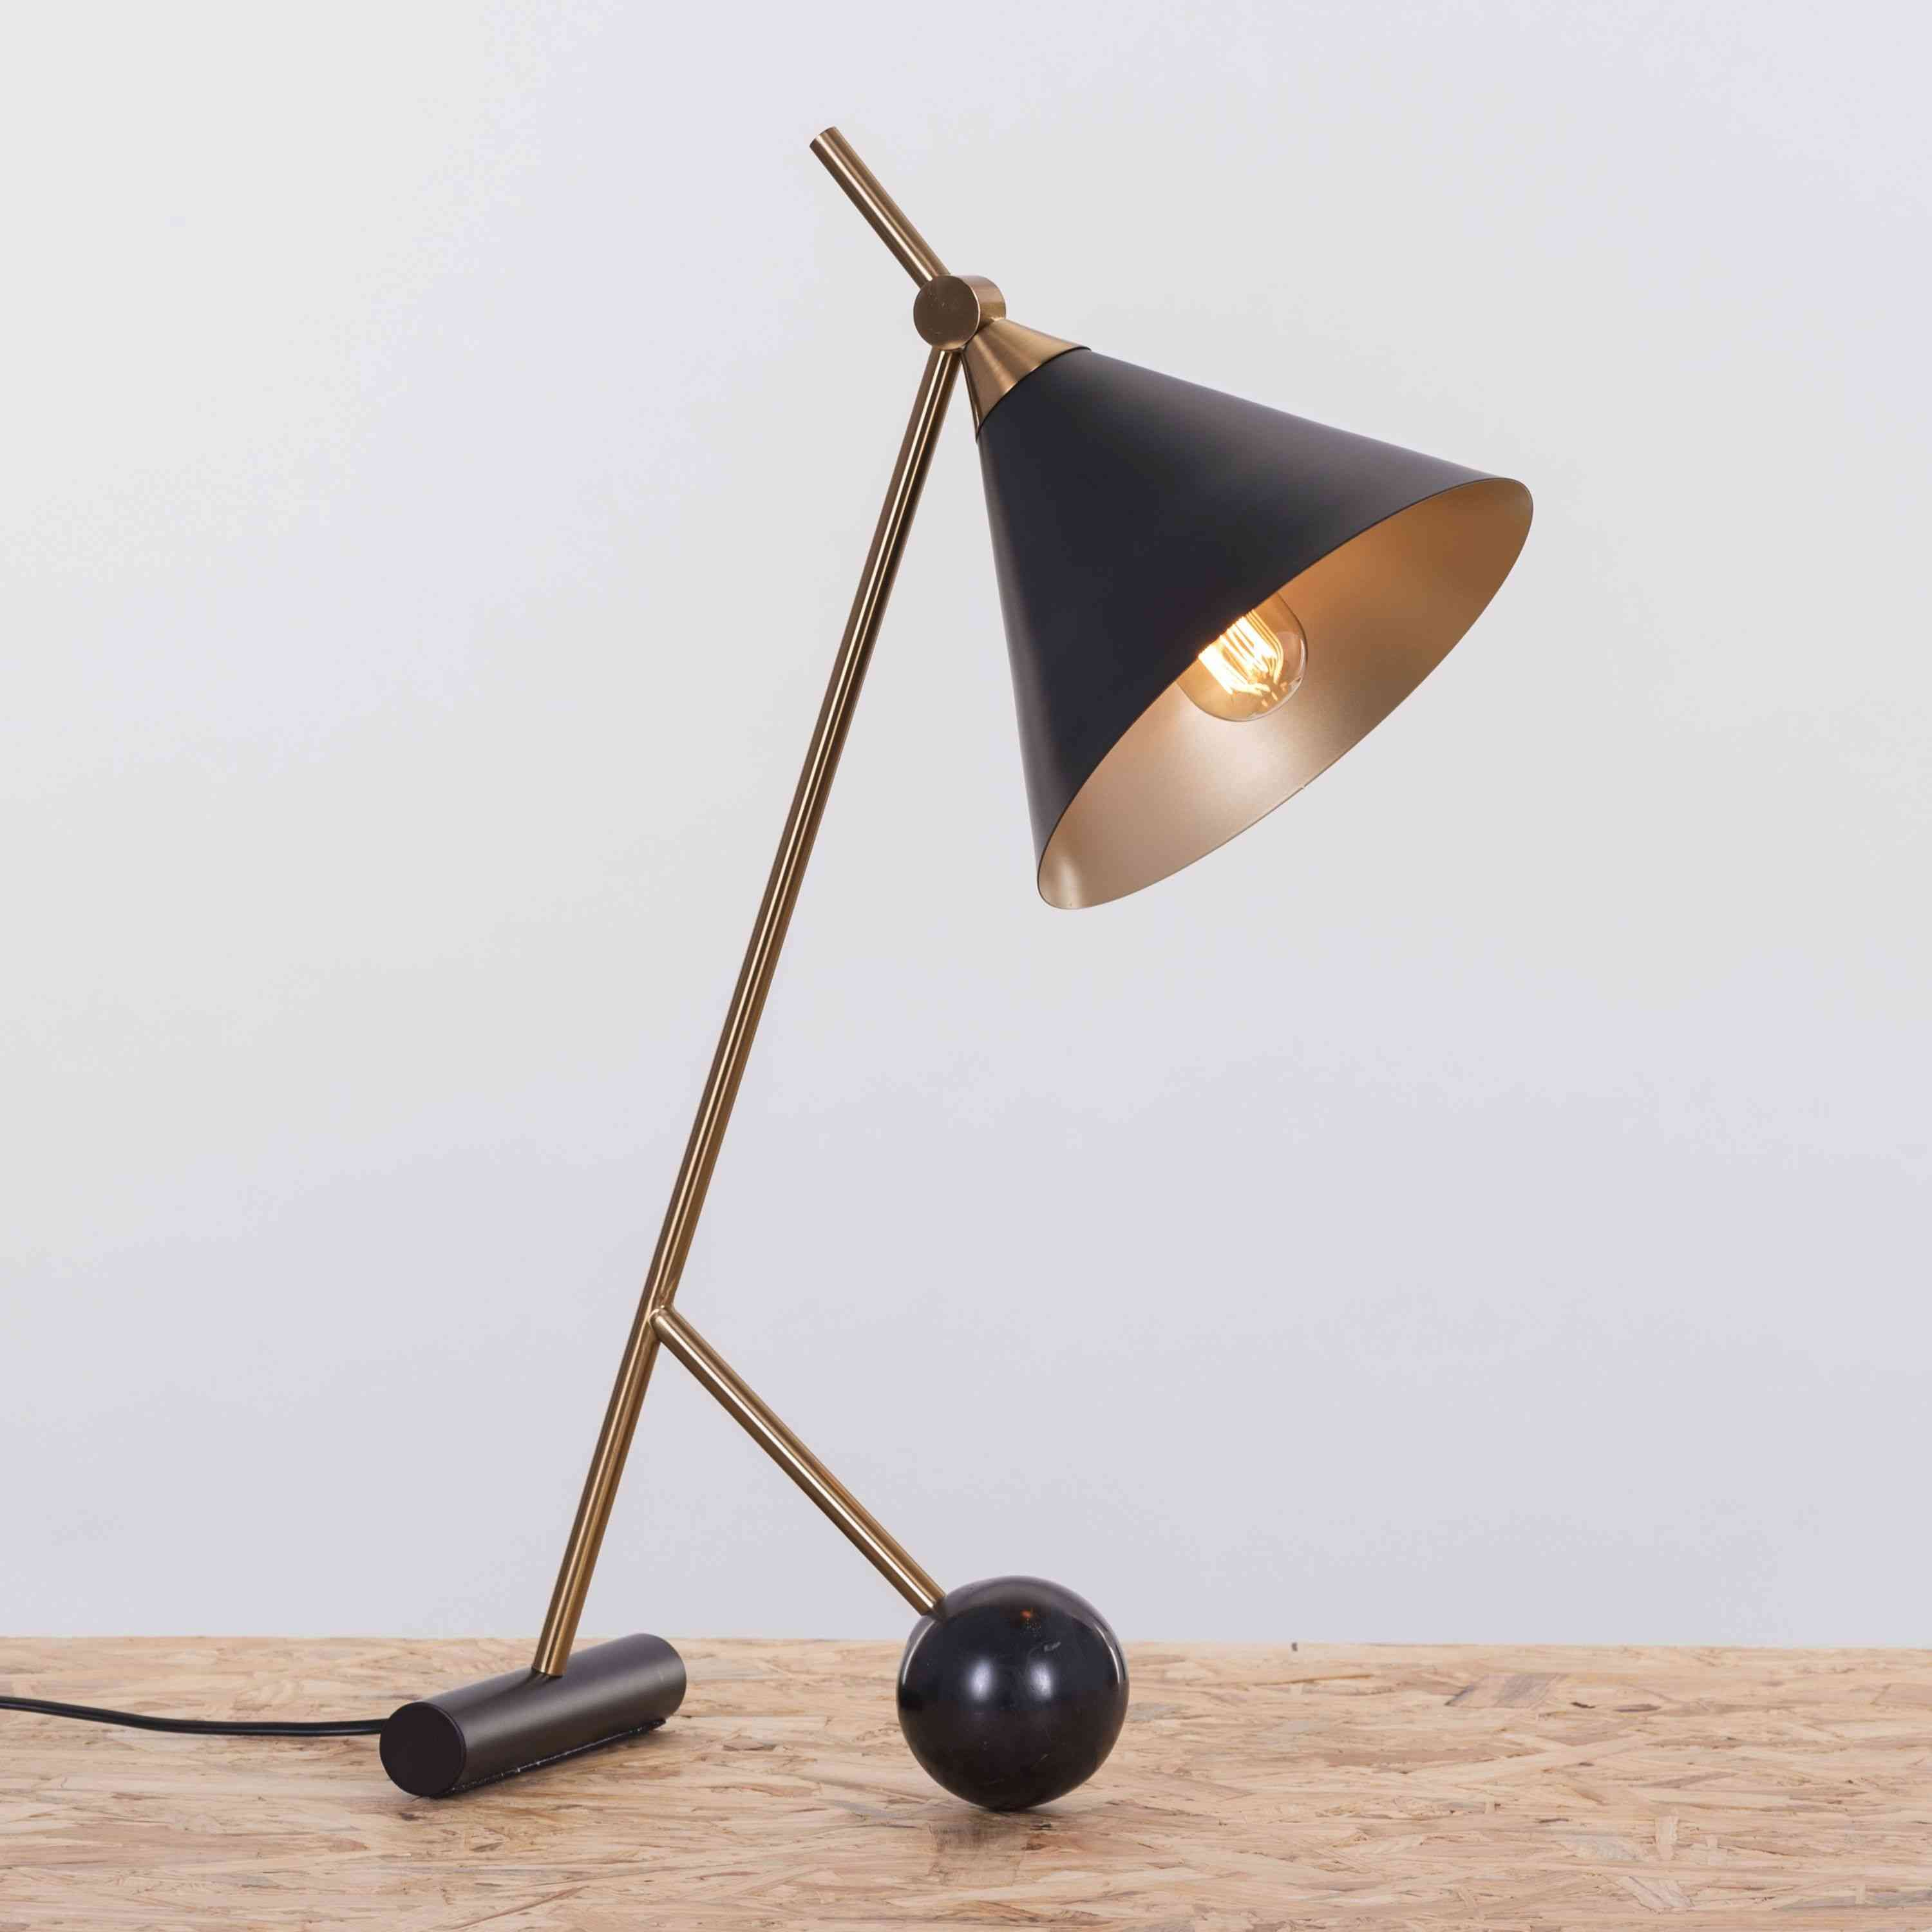 The Night Watch (Black) Smart LED Table Lamp: Buy Table